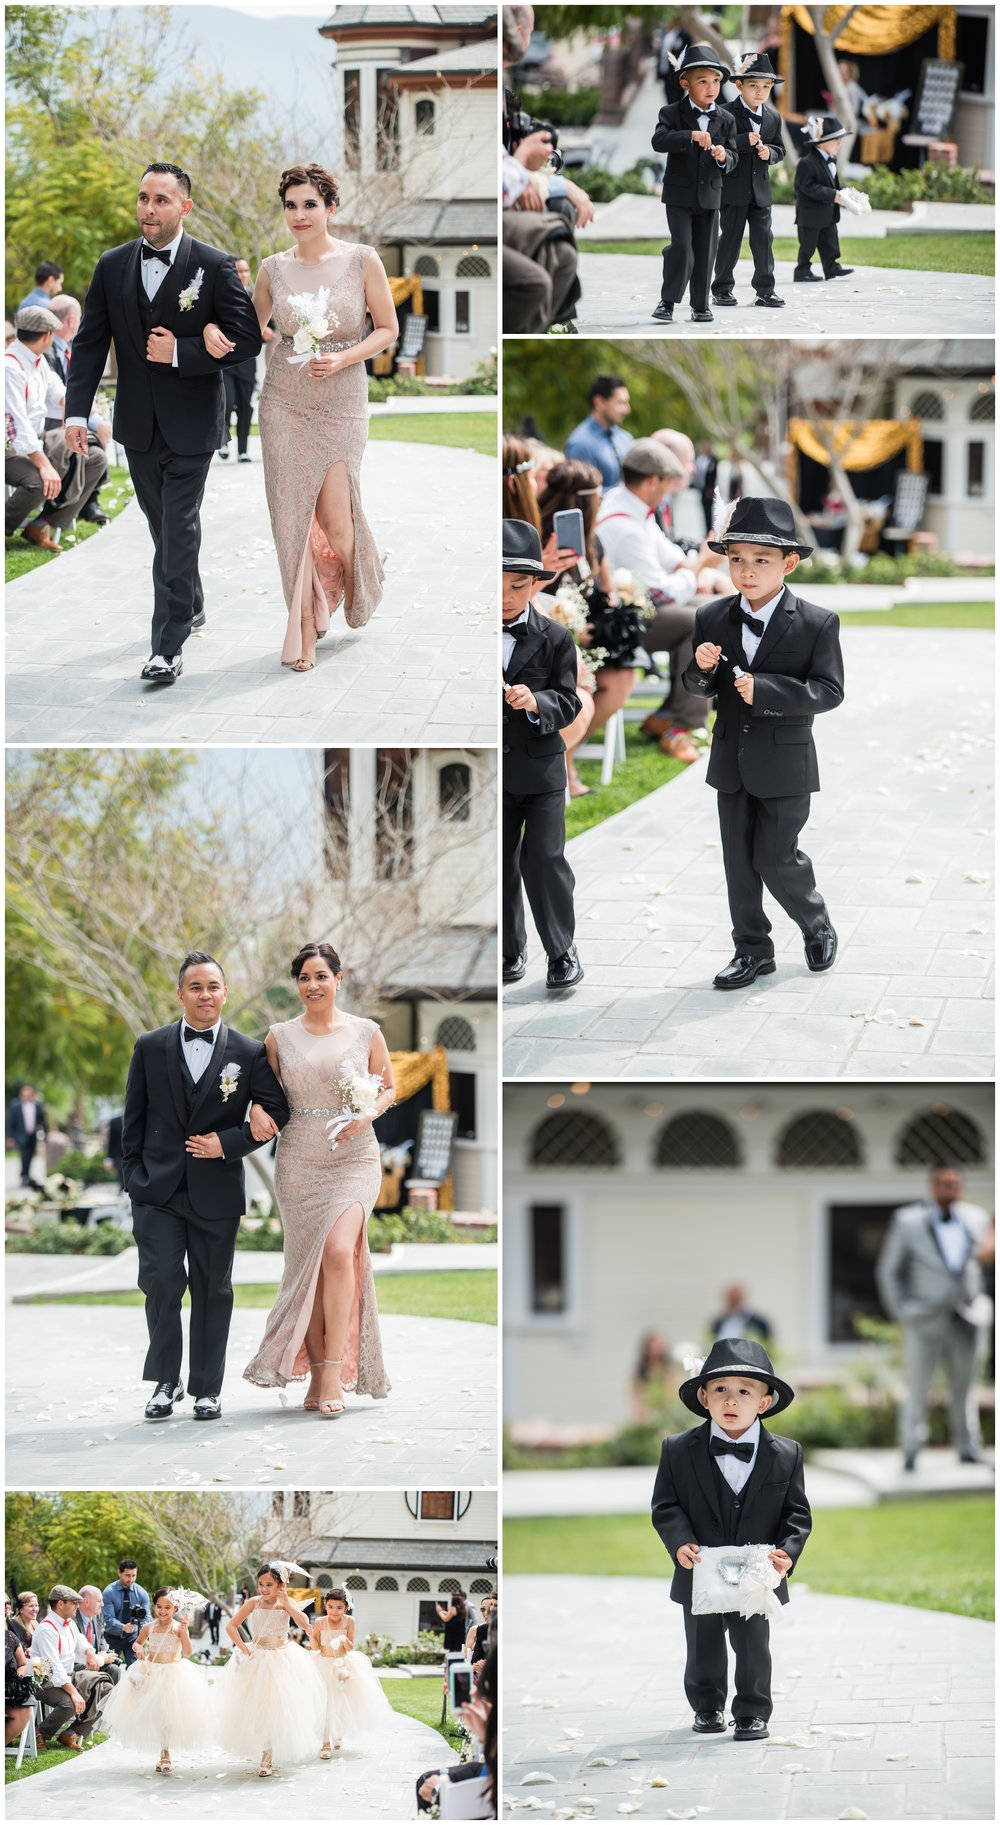 lunabellaphotos- new hall mansion-walking down the aisle